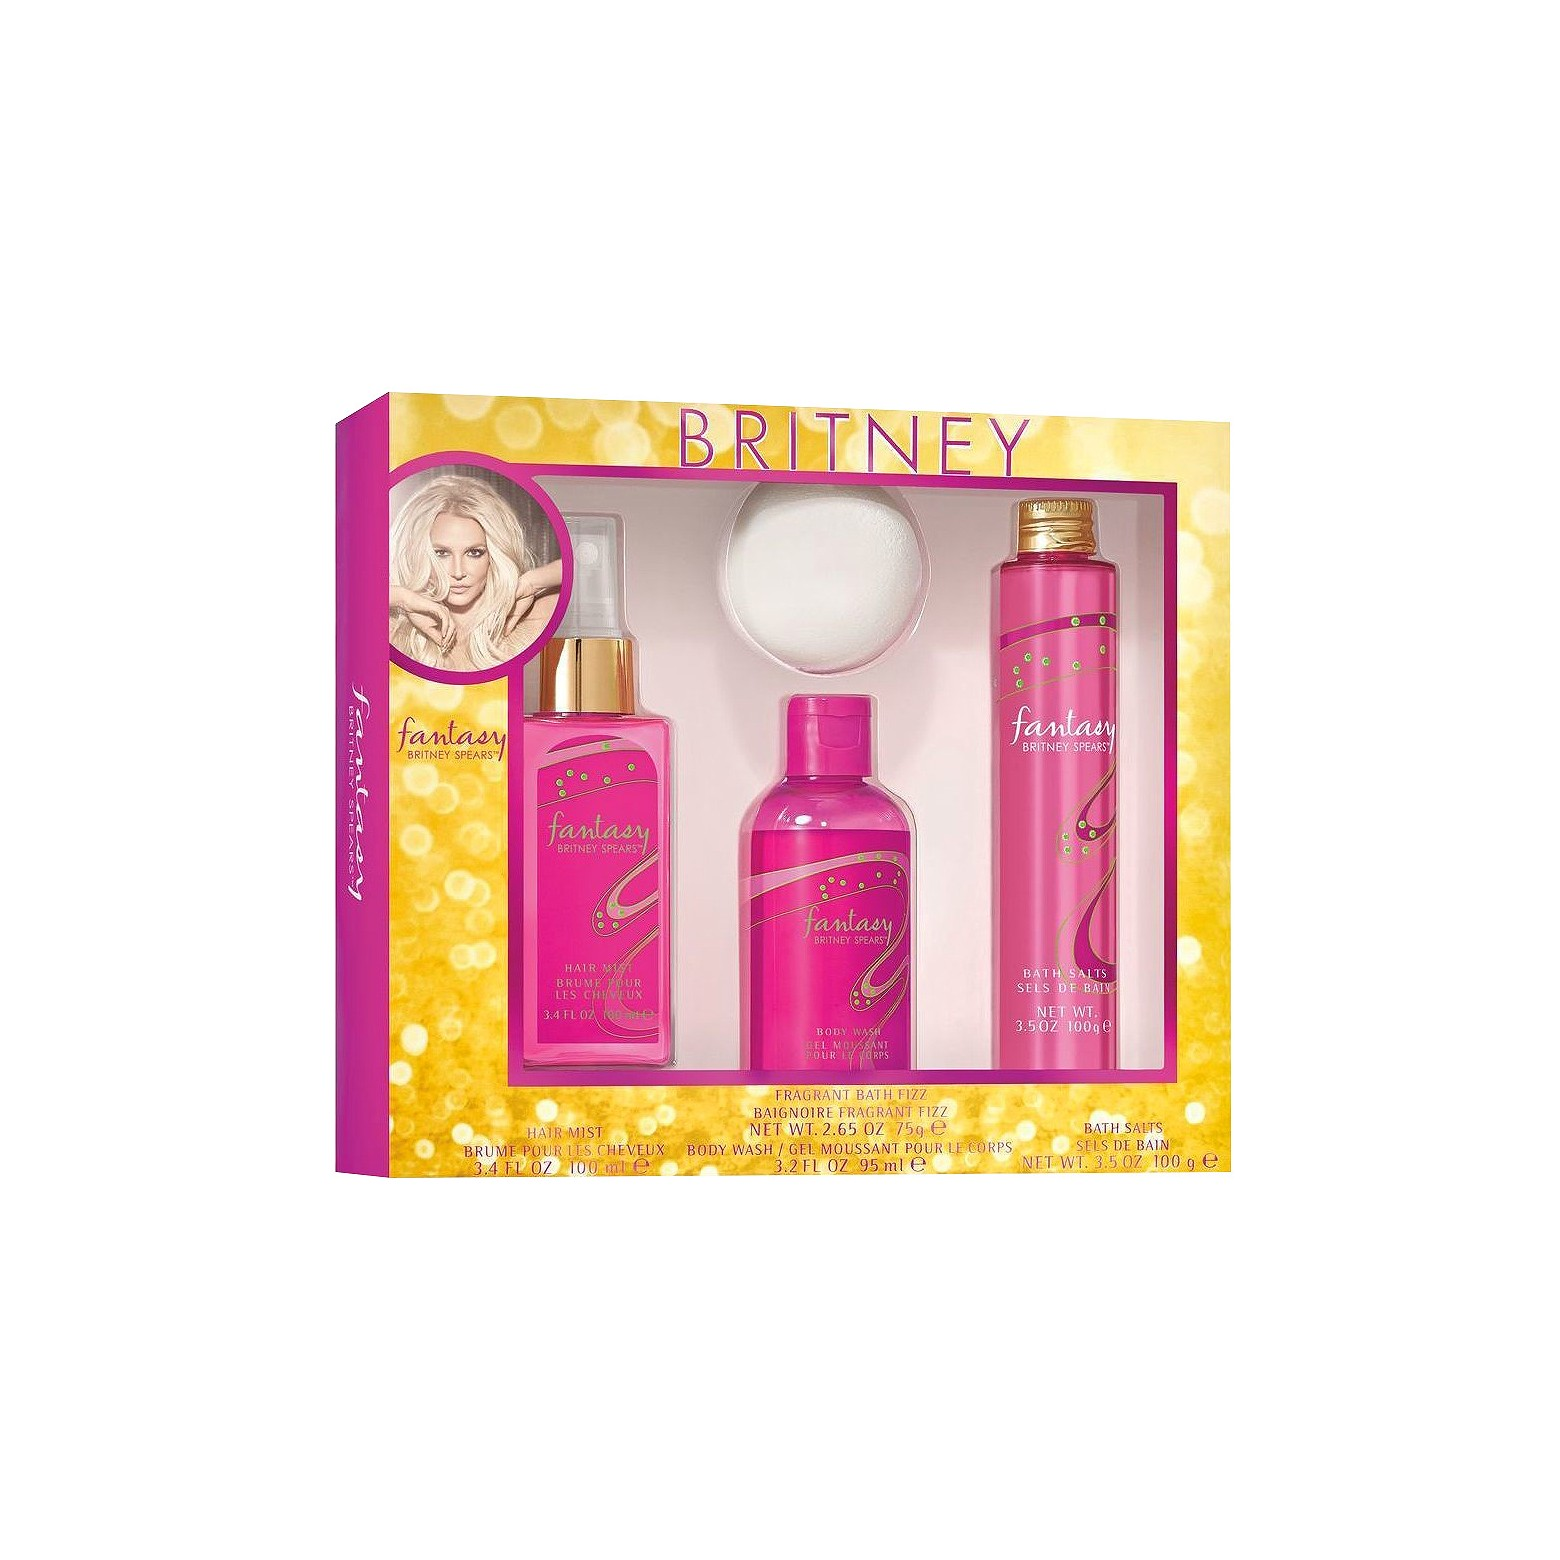 Fantasy By Britney Spears Fragrance Bath Set - 4 Pieces  $9.99 at Target.com  Previously found at Walgreens & unboxed exclusively on DerekPlease.com